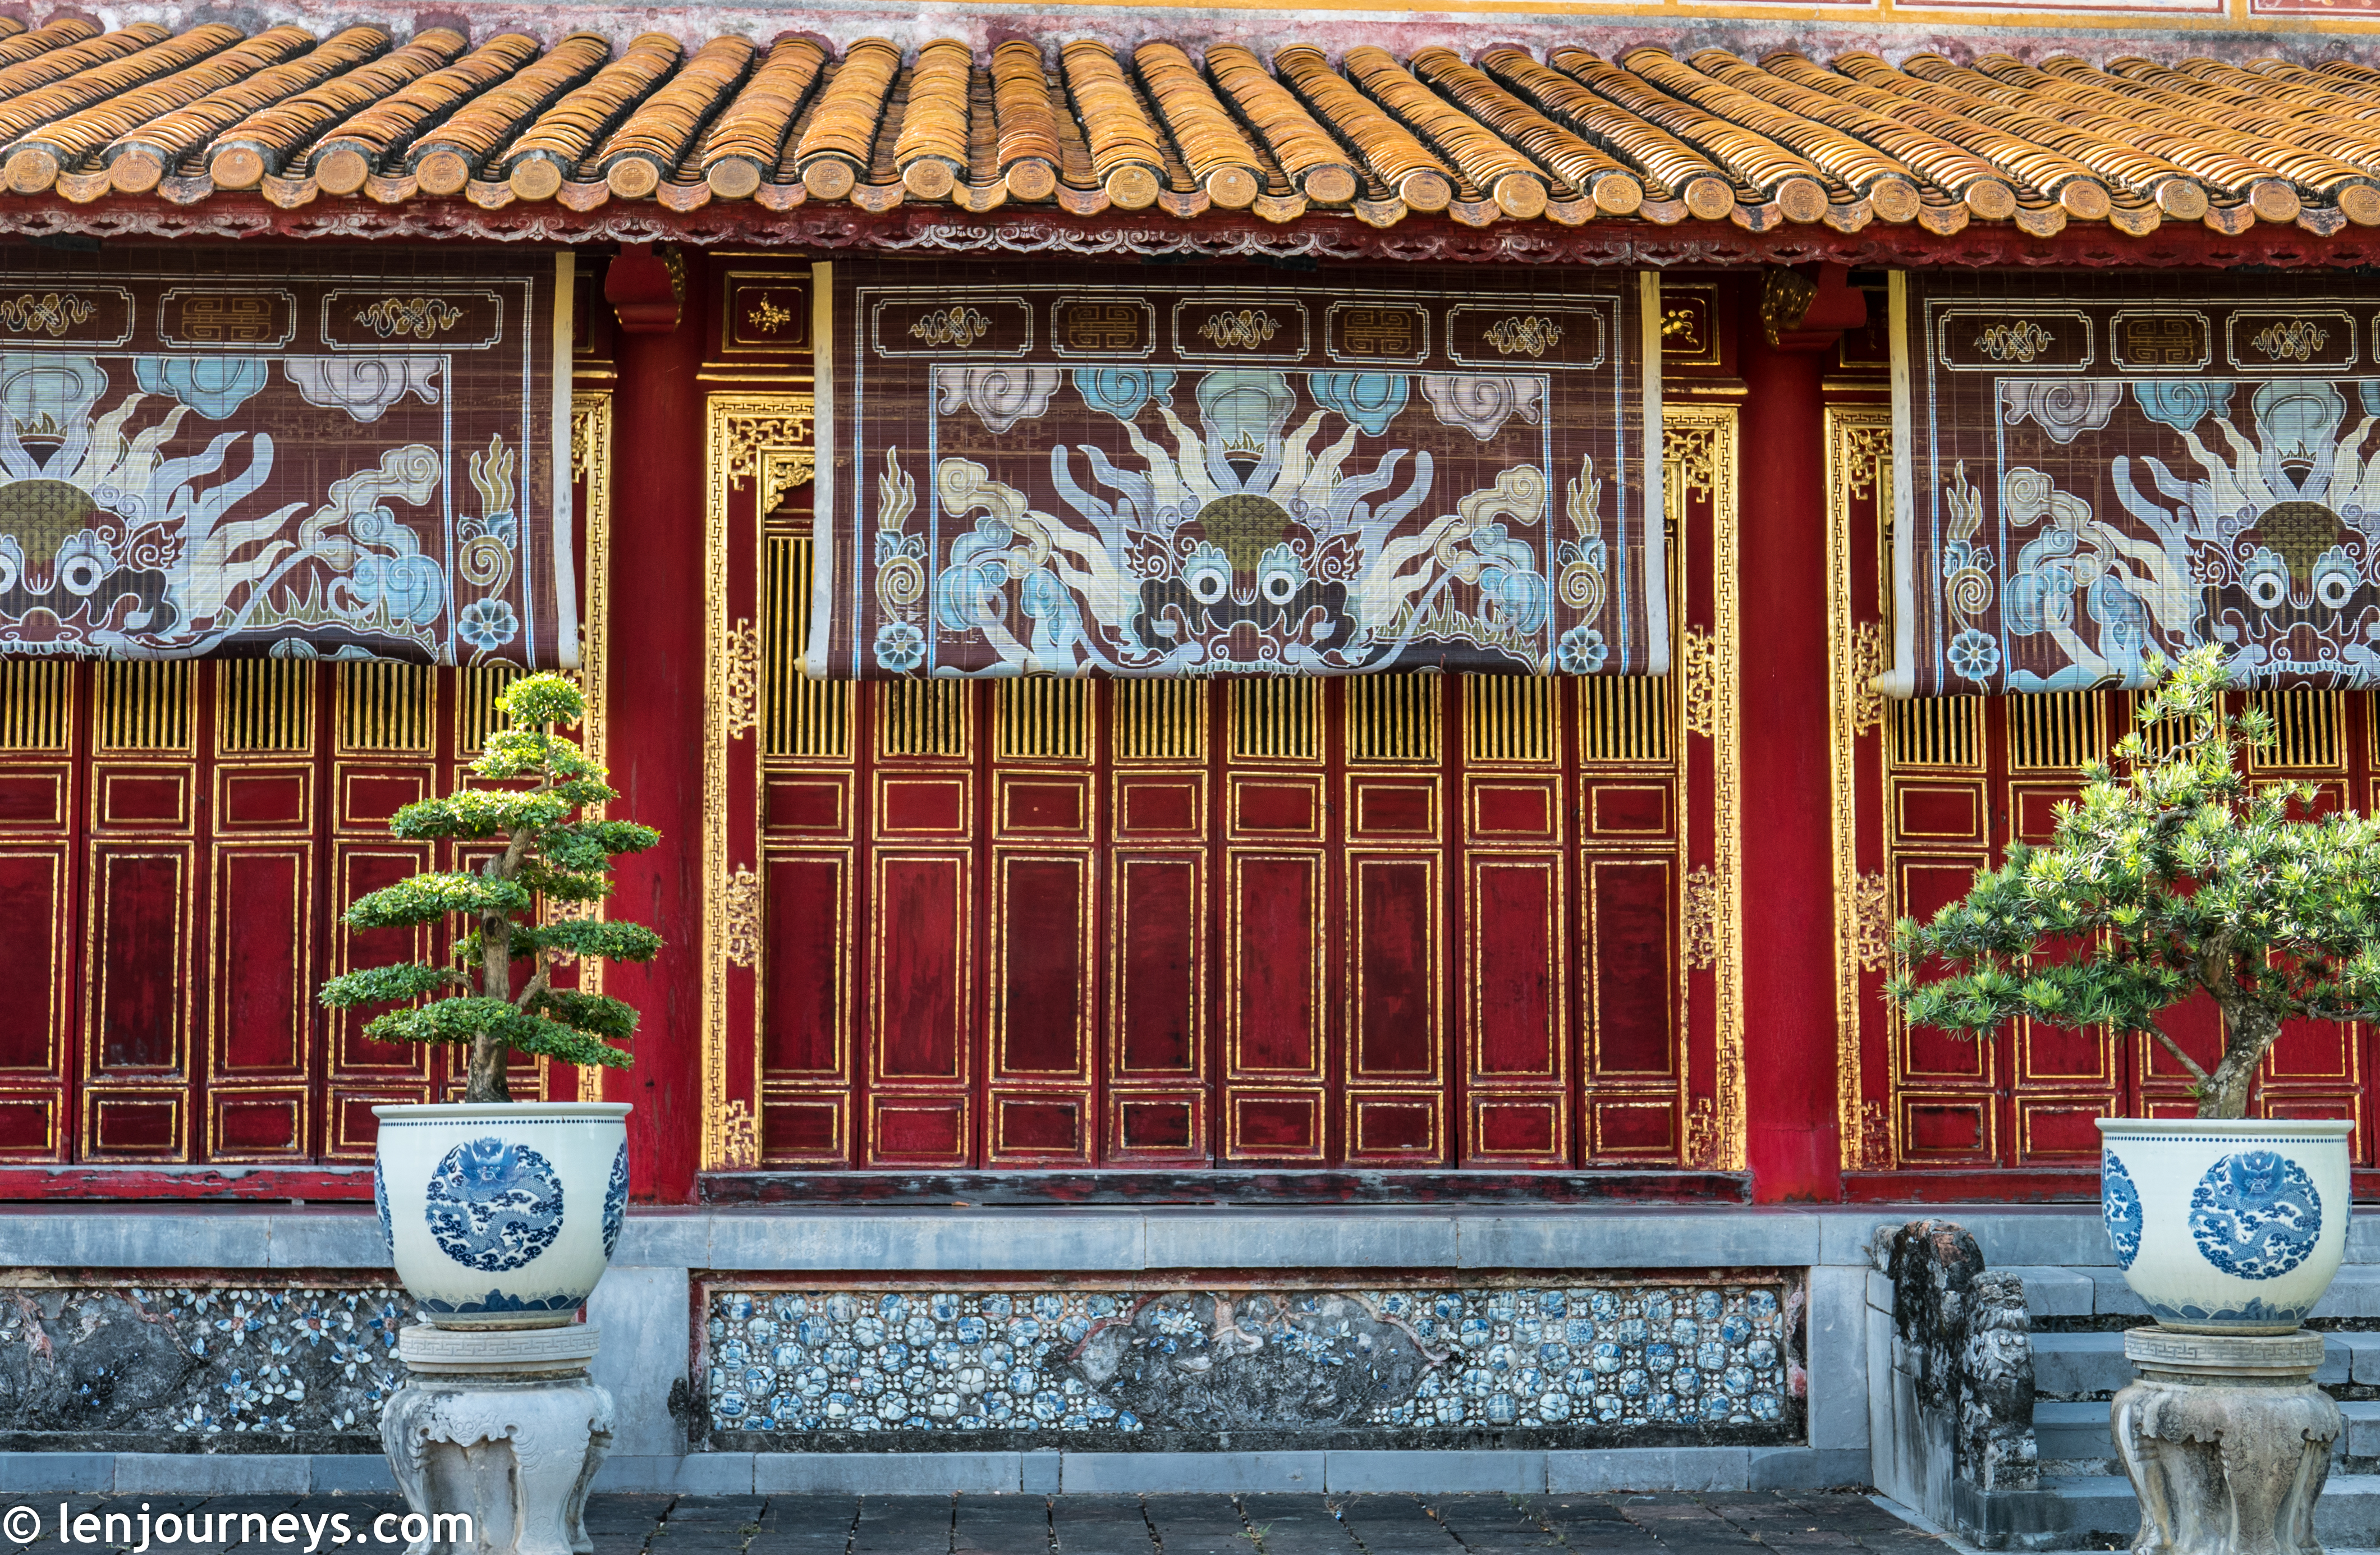 Dragon motif in Hue Imperial City